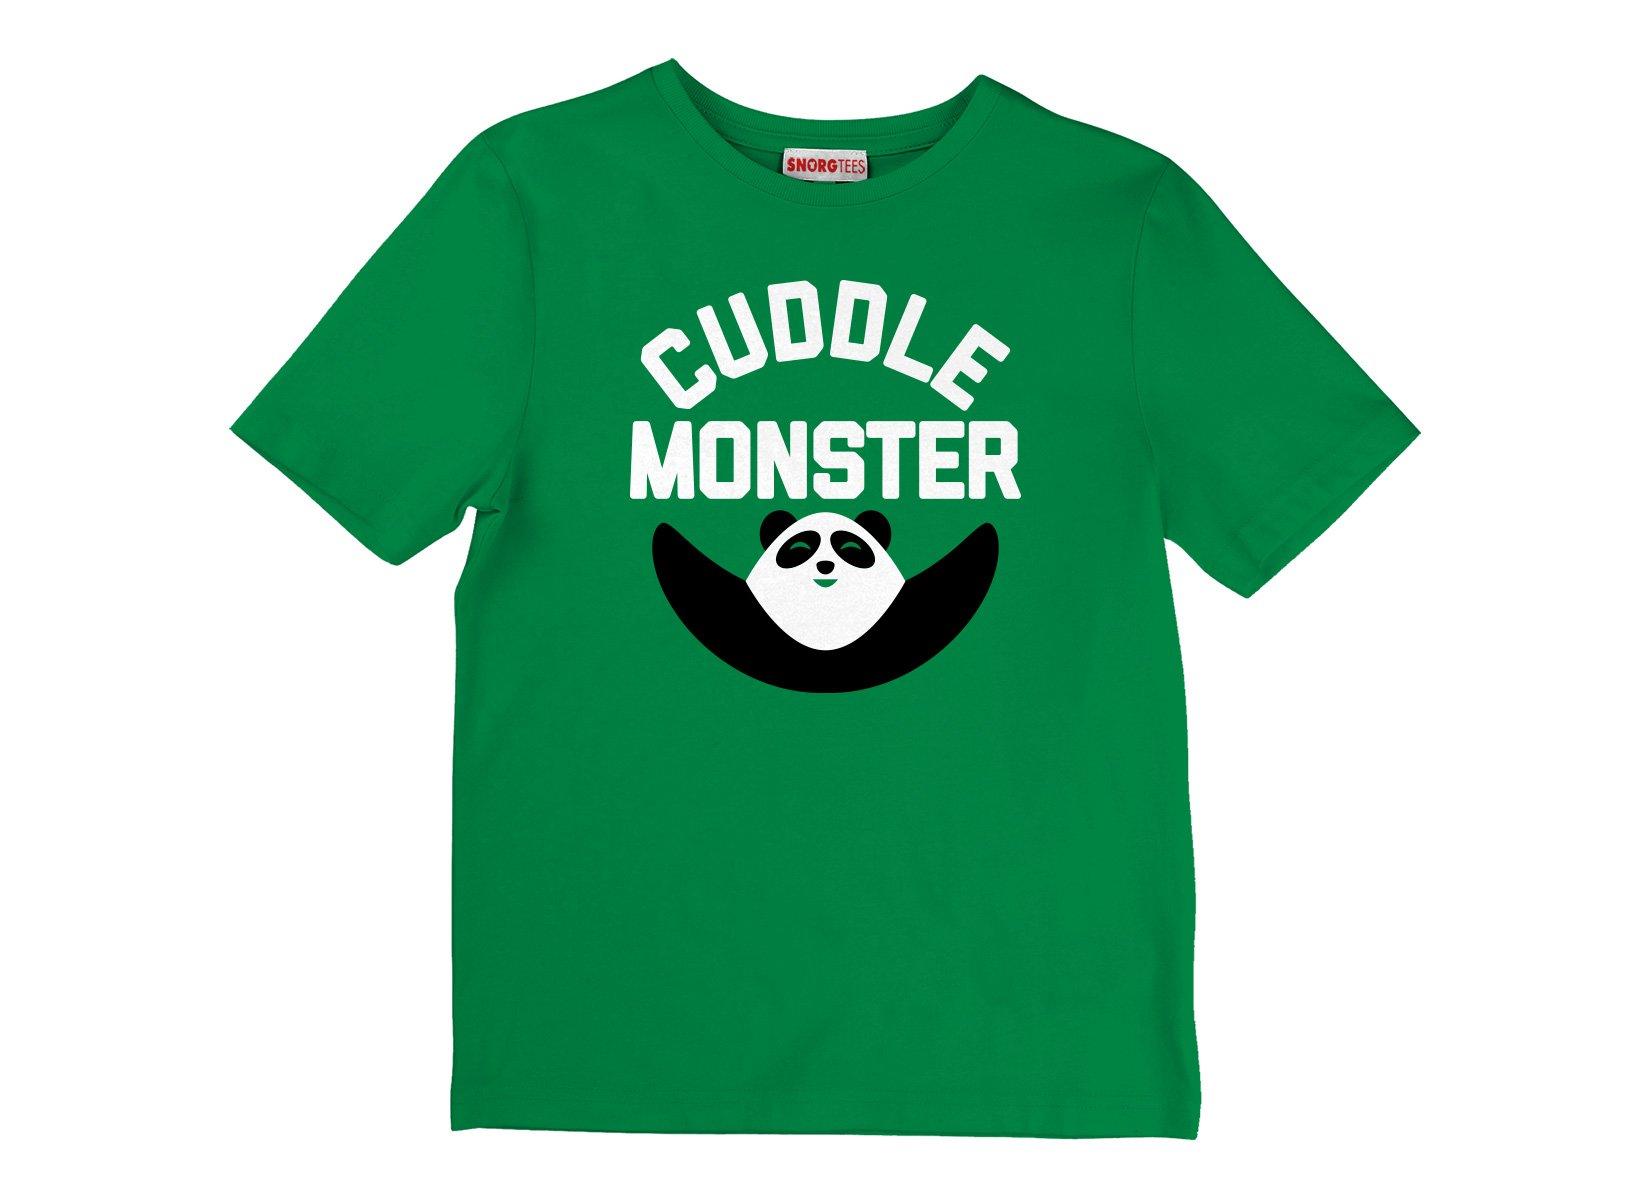 Cuddle Monster on Kids T-Shirt